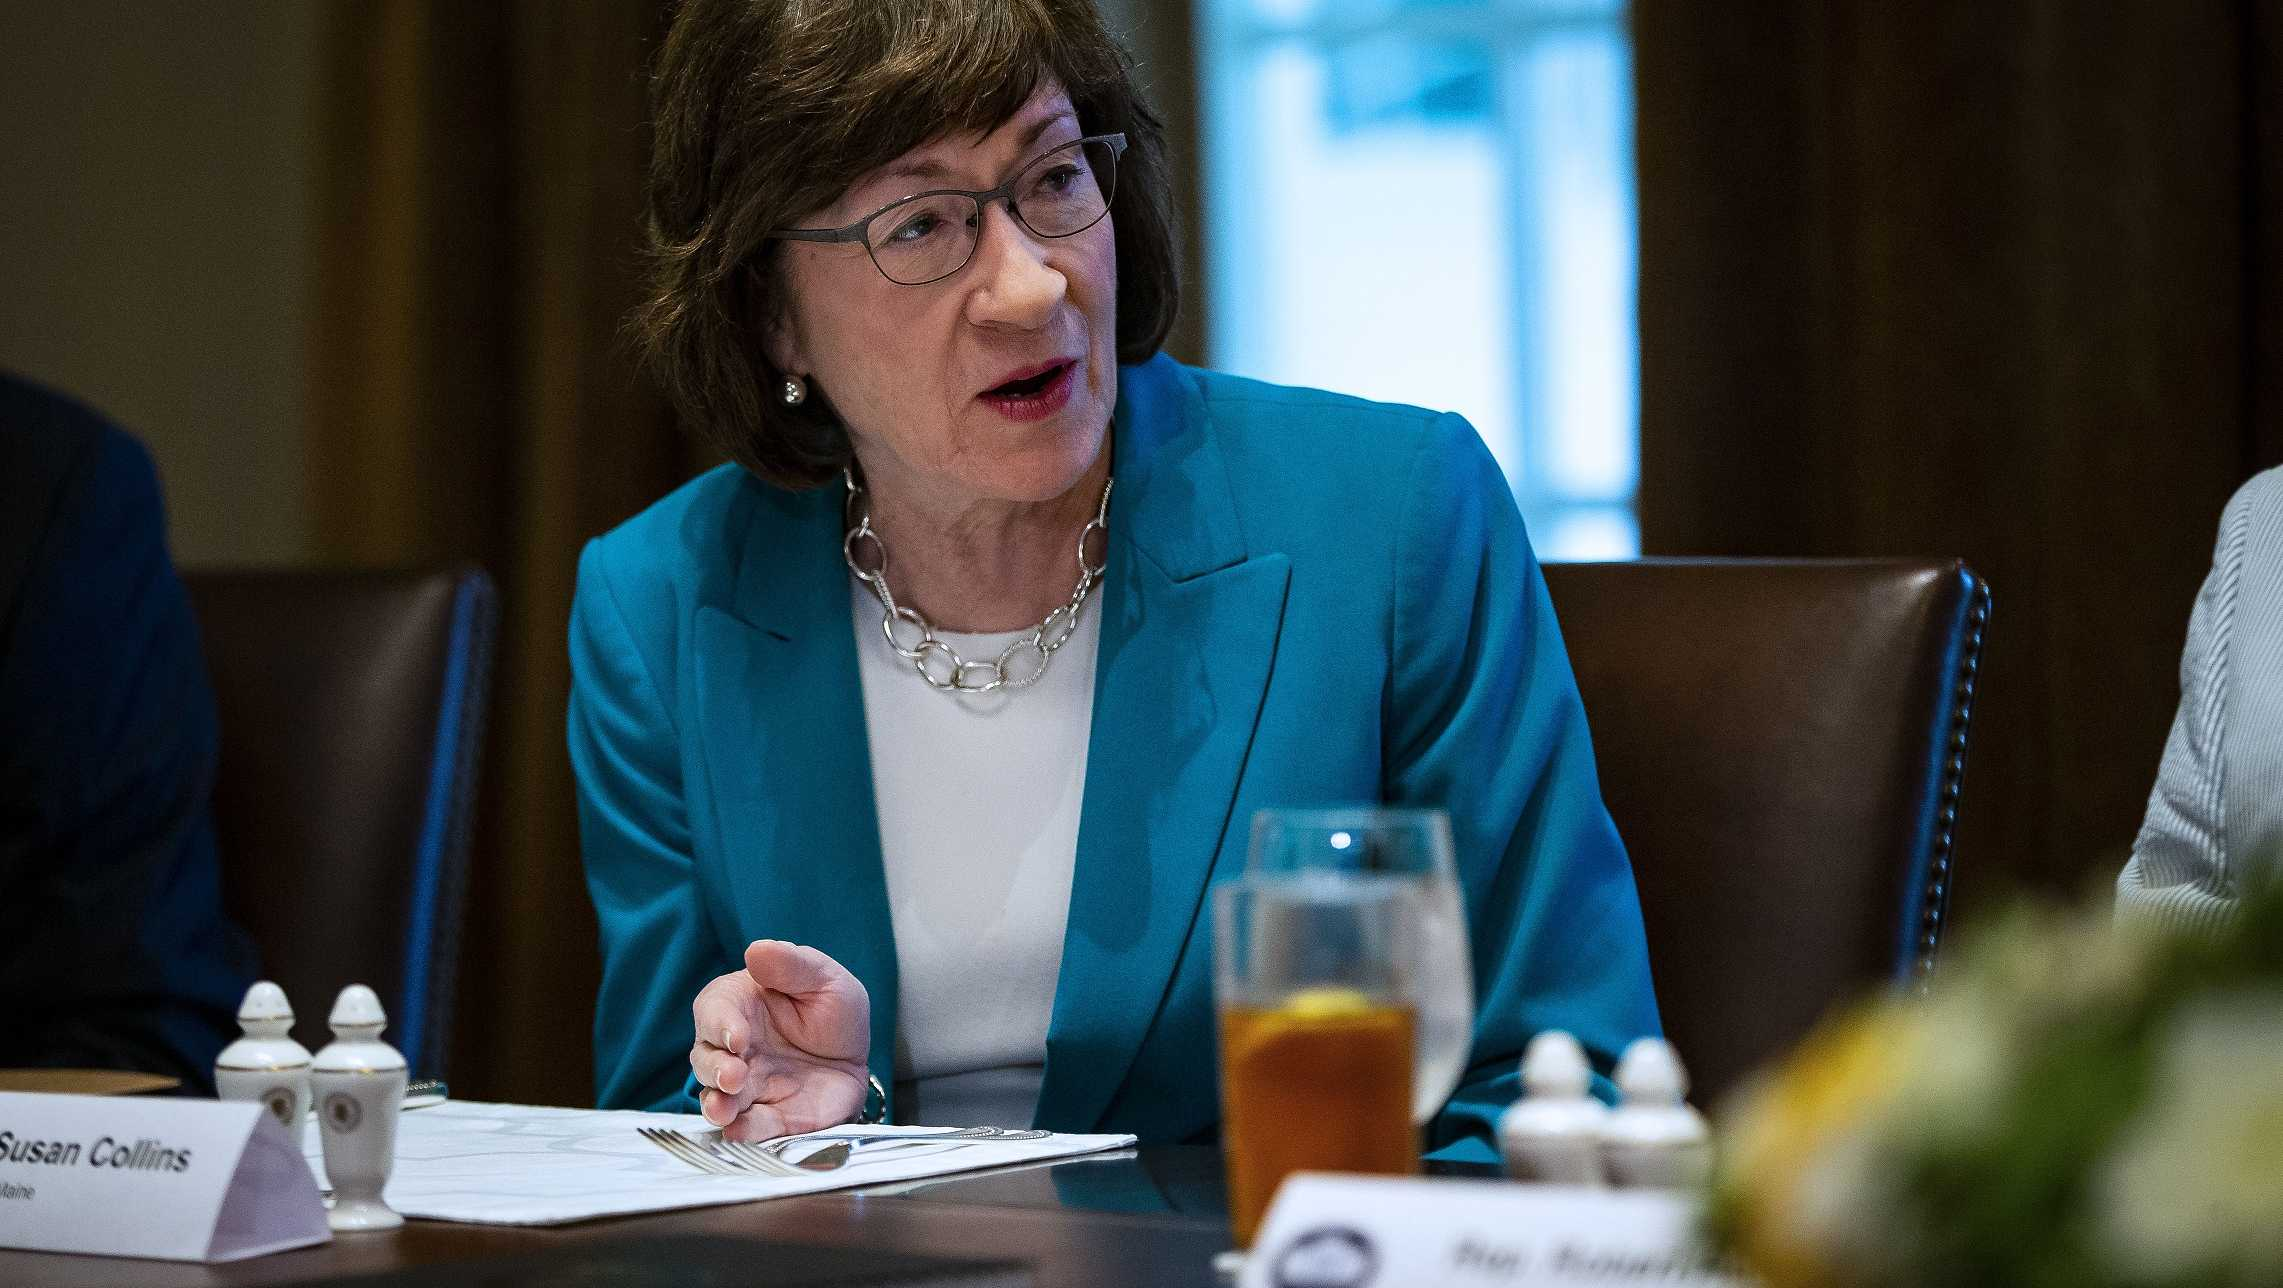 U.S. Sen. Susan Collins (R-ME) attends a lunch meeting for Republican lawmakers in the Cabinet Room at the White House on June 26, 2018.